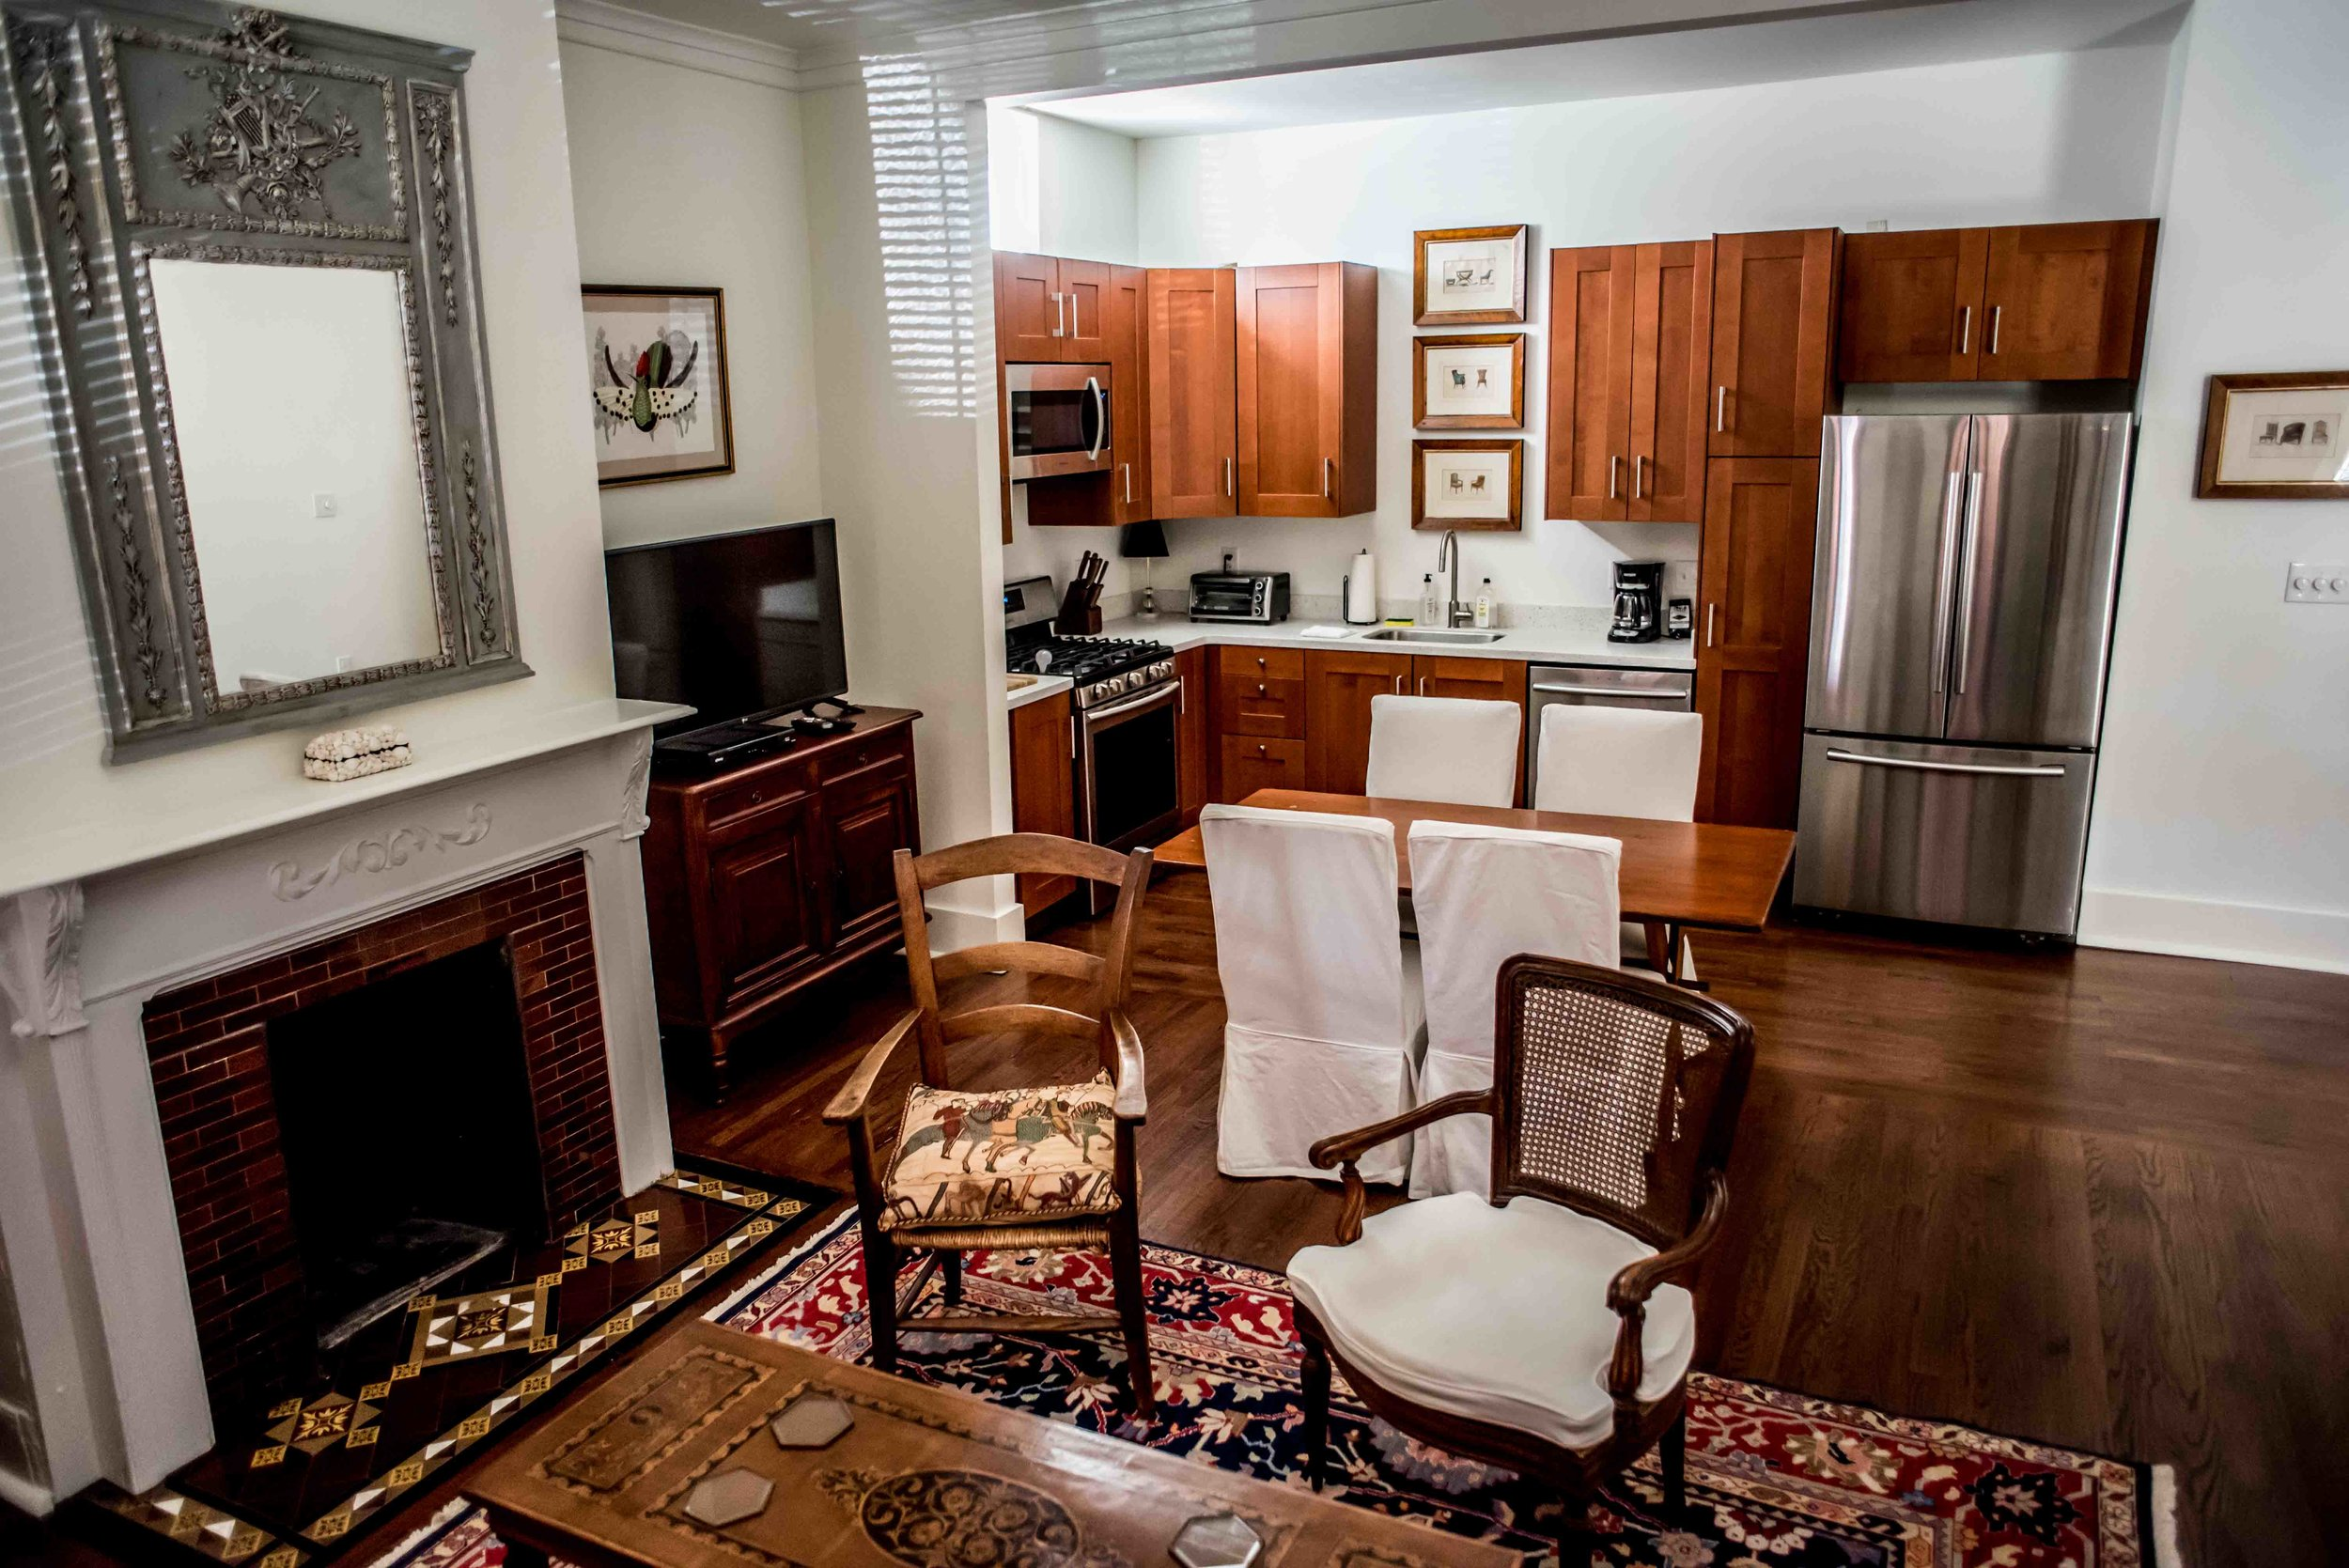 248 A - 2 BEDROOMS - SLEEPS 5AVAILABLE ON A MONTHLY BASIS: 10/15